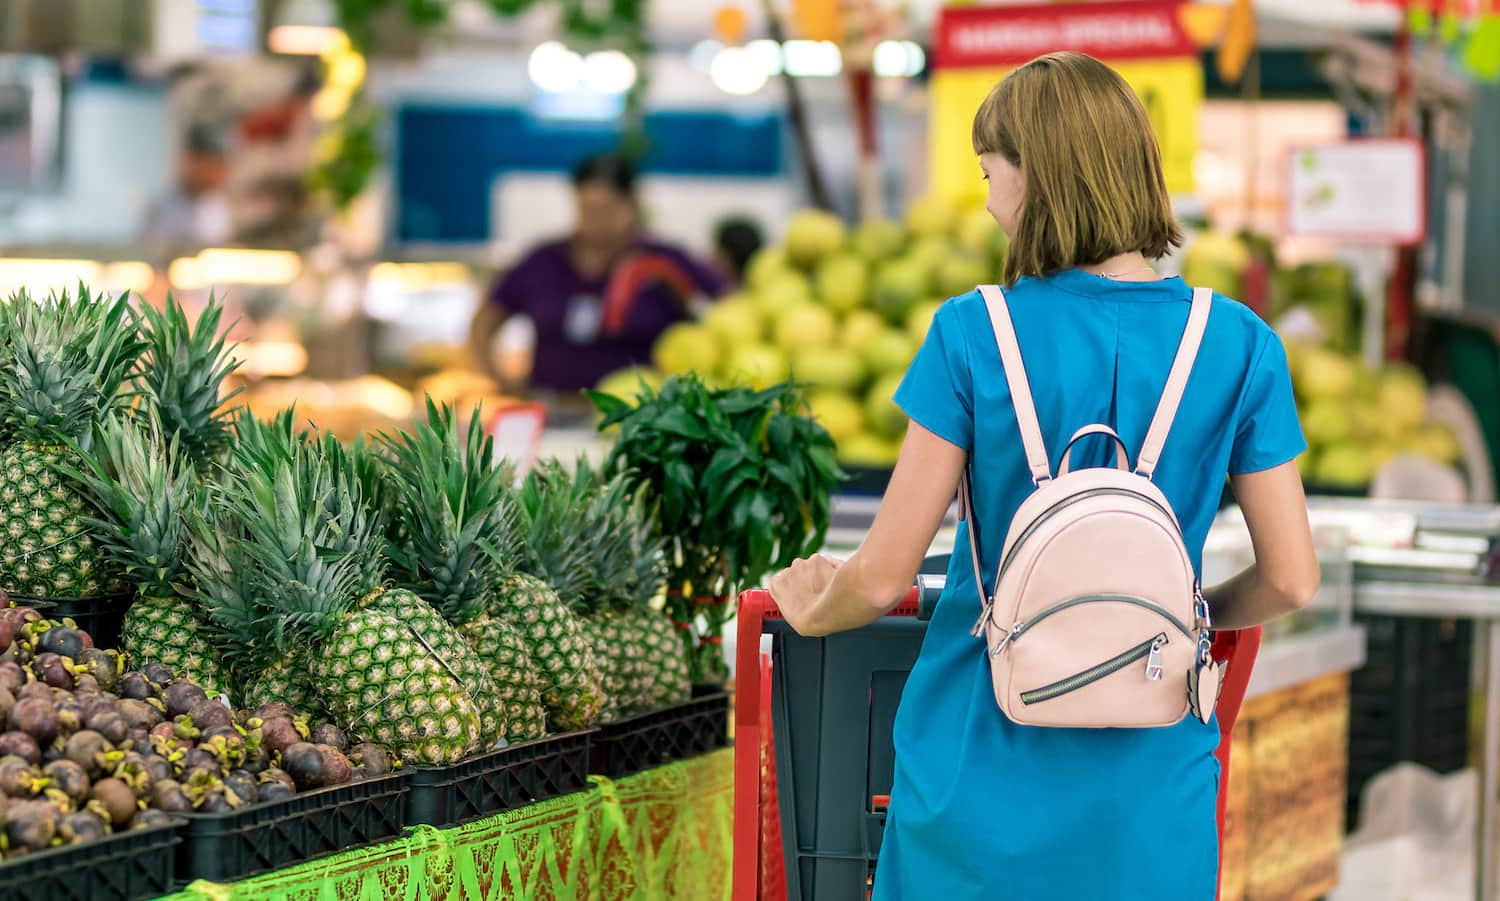 A growing eco-consumerism movement is on the cusp of transforming the way we consume food.